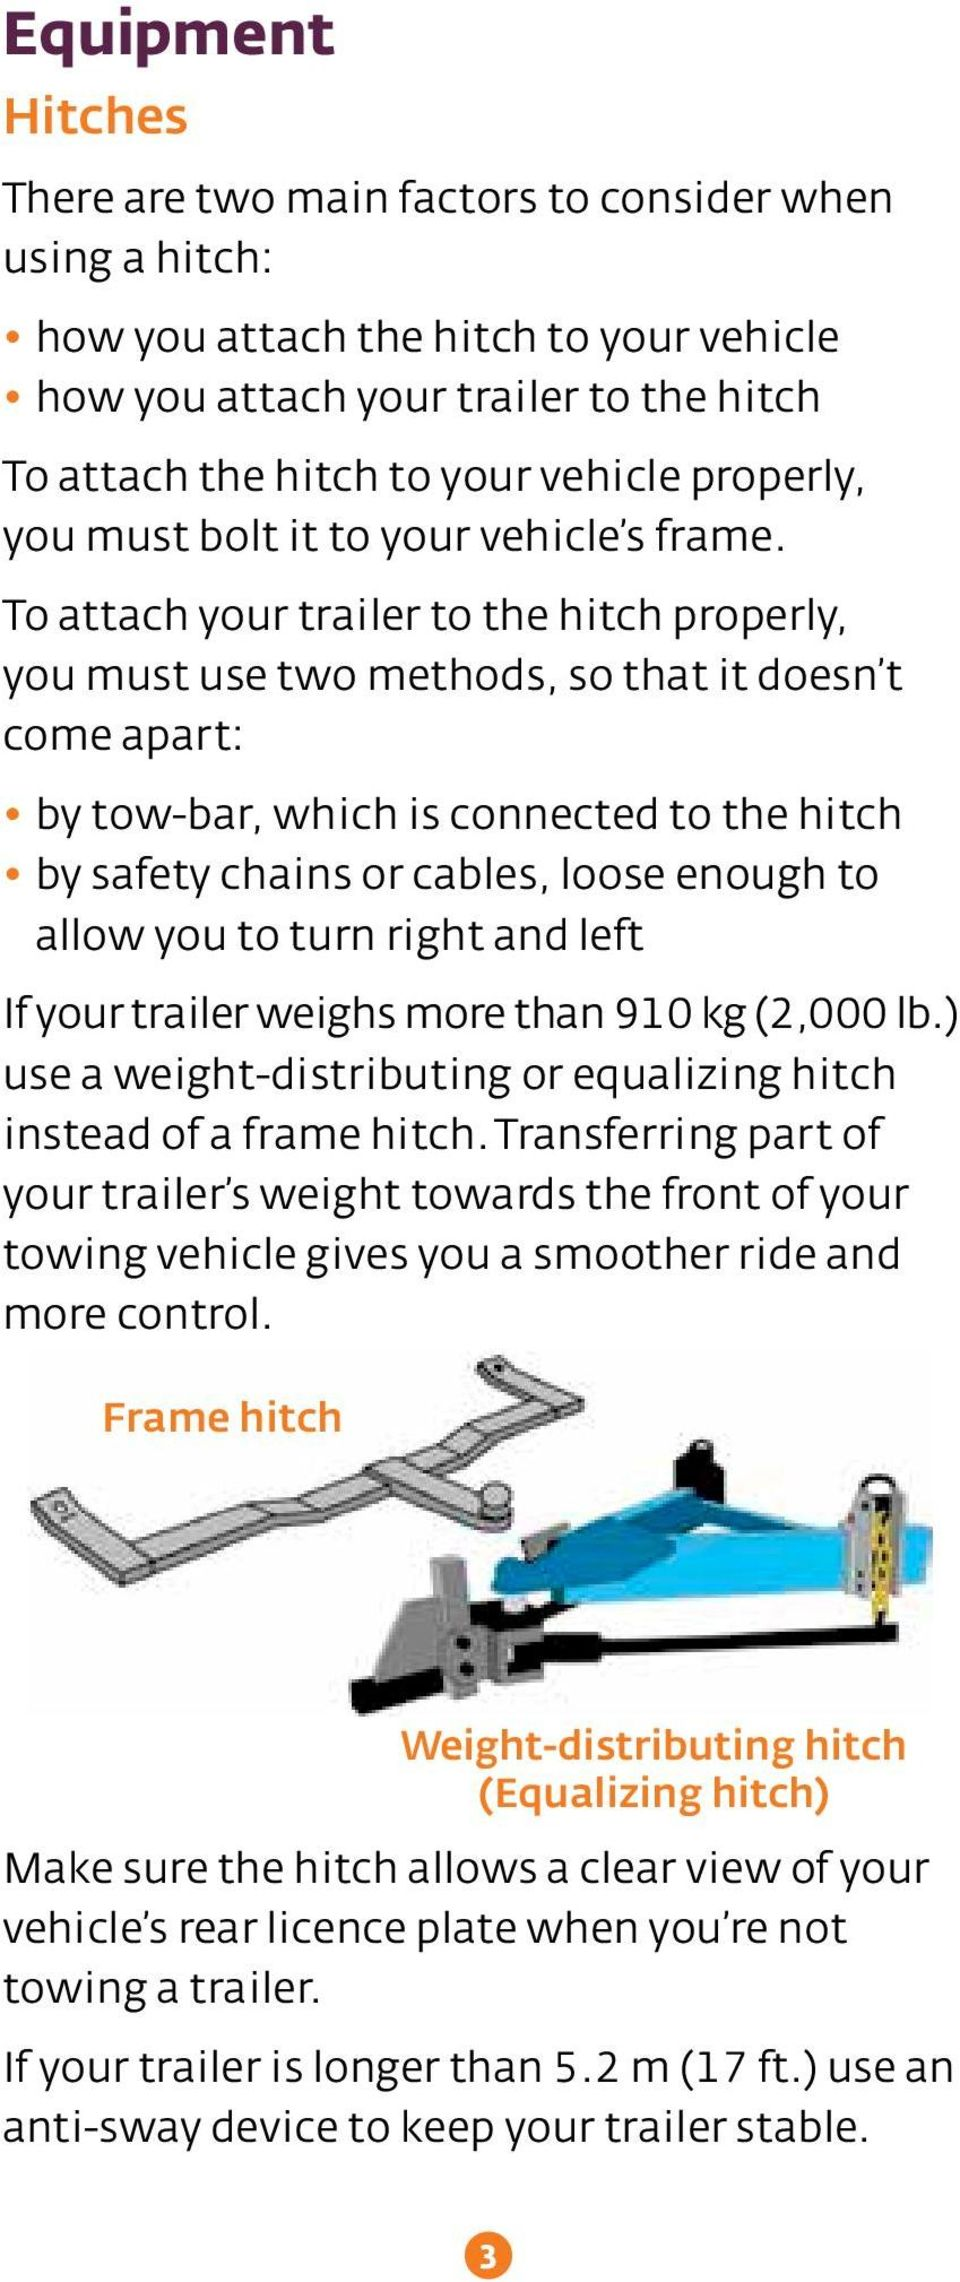 Trailer Safety Required Equipment Maintenance Safe Operation Weightdistributingtrailerhitchdiagramjpg To Attach Your The Hitch Properly You Must Use Two Methods So